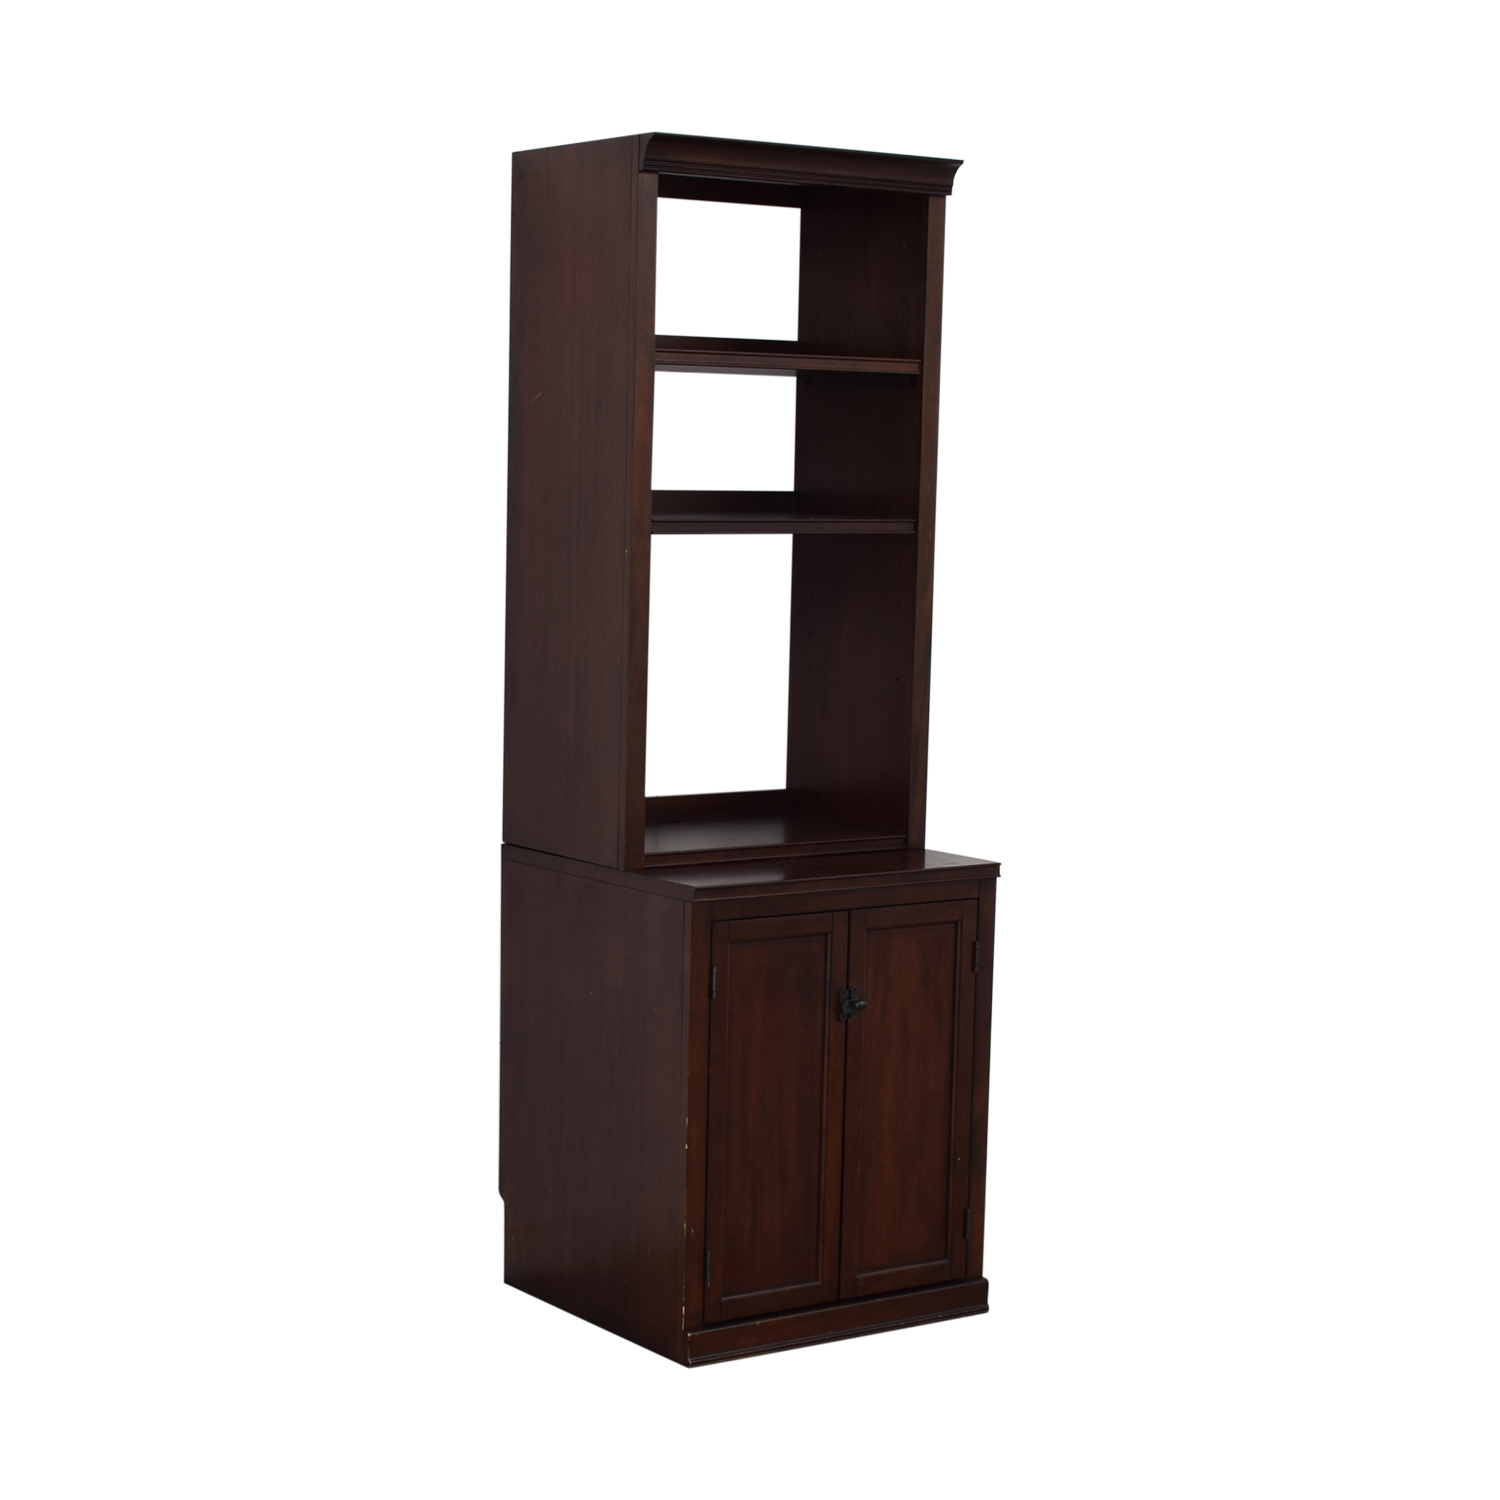 Pottery Barn Pottery Barn Bookcases with Storage Cabinet discount